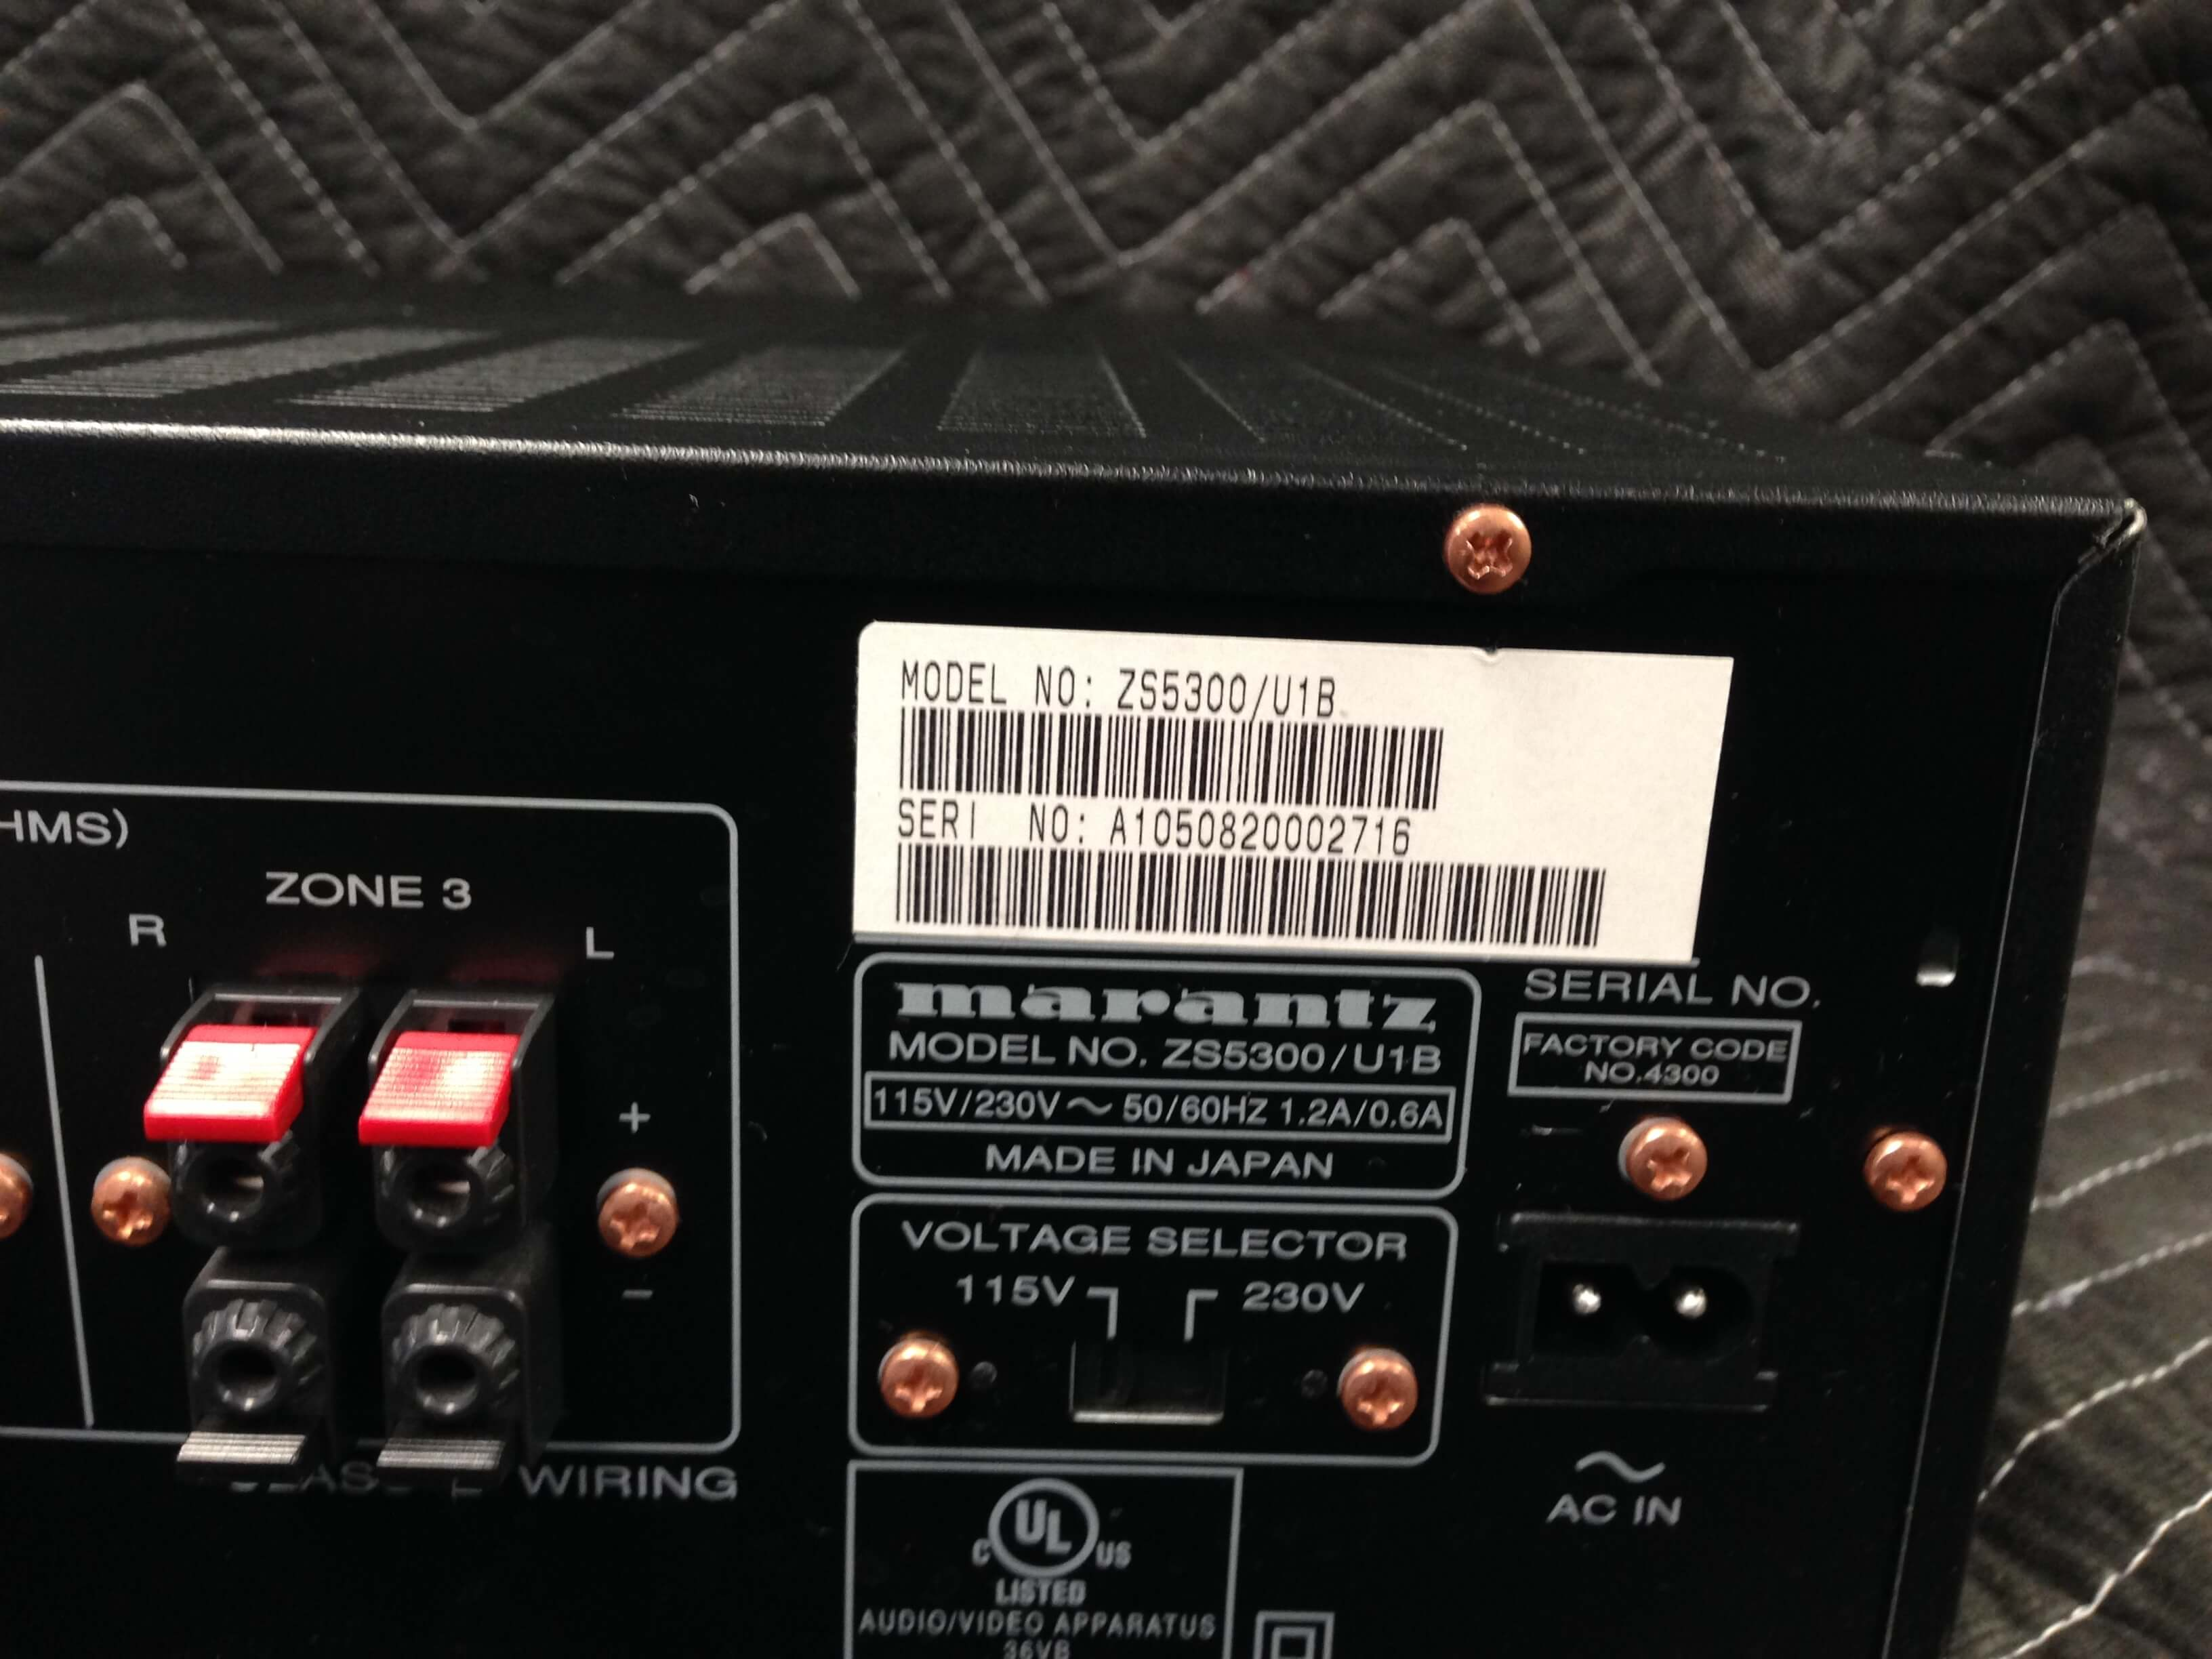 Marantz ZS 5300 3 Zone Amplifier